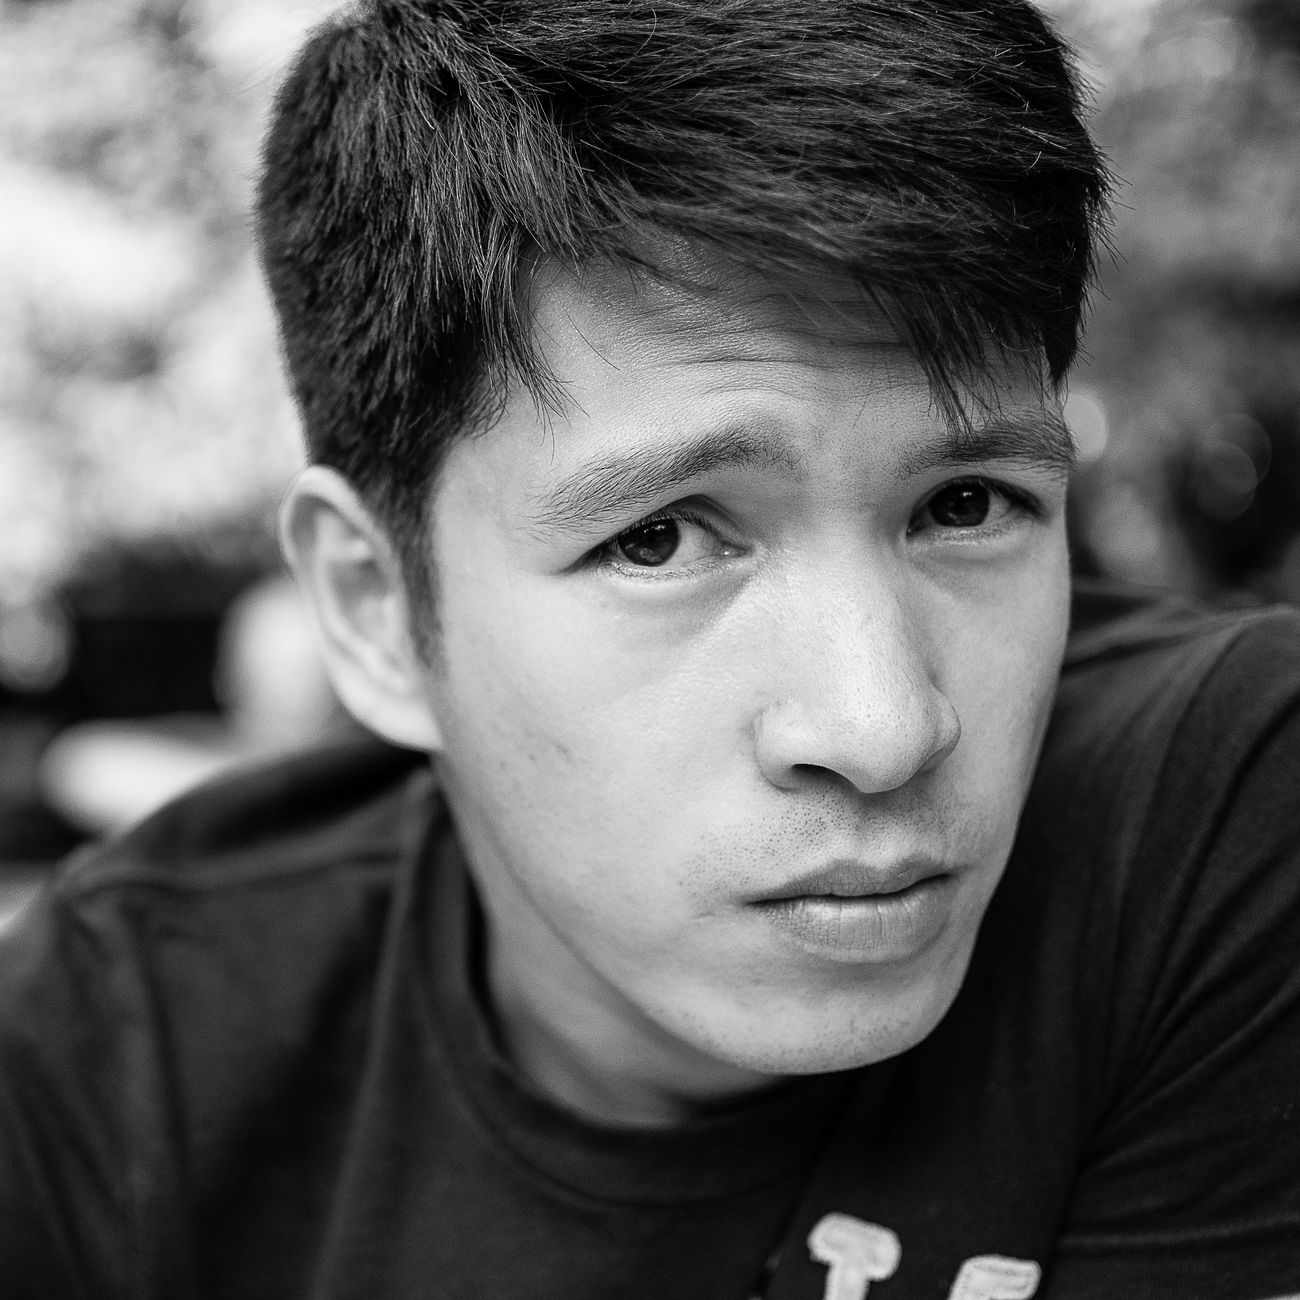 Donnie Blackandwhite Boys Childhood Close-up Day Focus On Foreground Headshot Human Eye Looking At Camera Nikonphotography One Person Outdoors People Pinoy Portrait Real People Young Adult